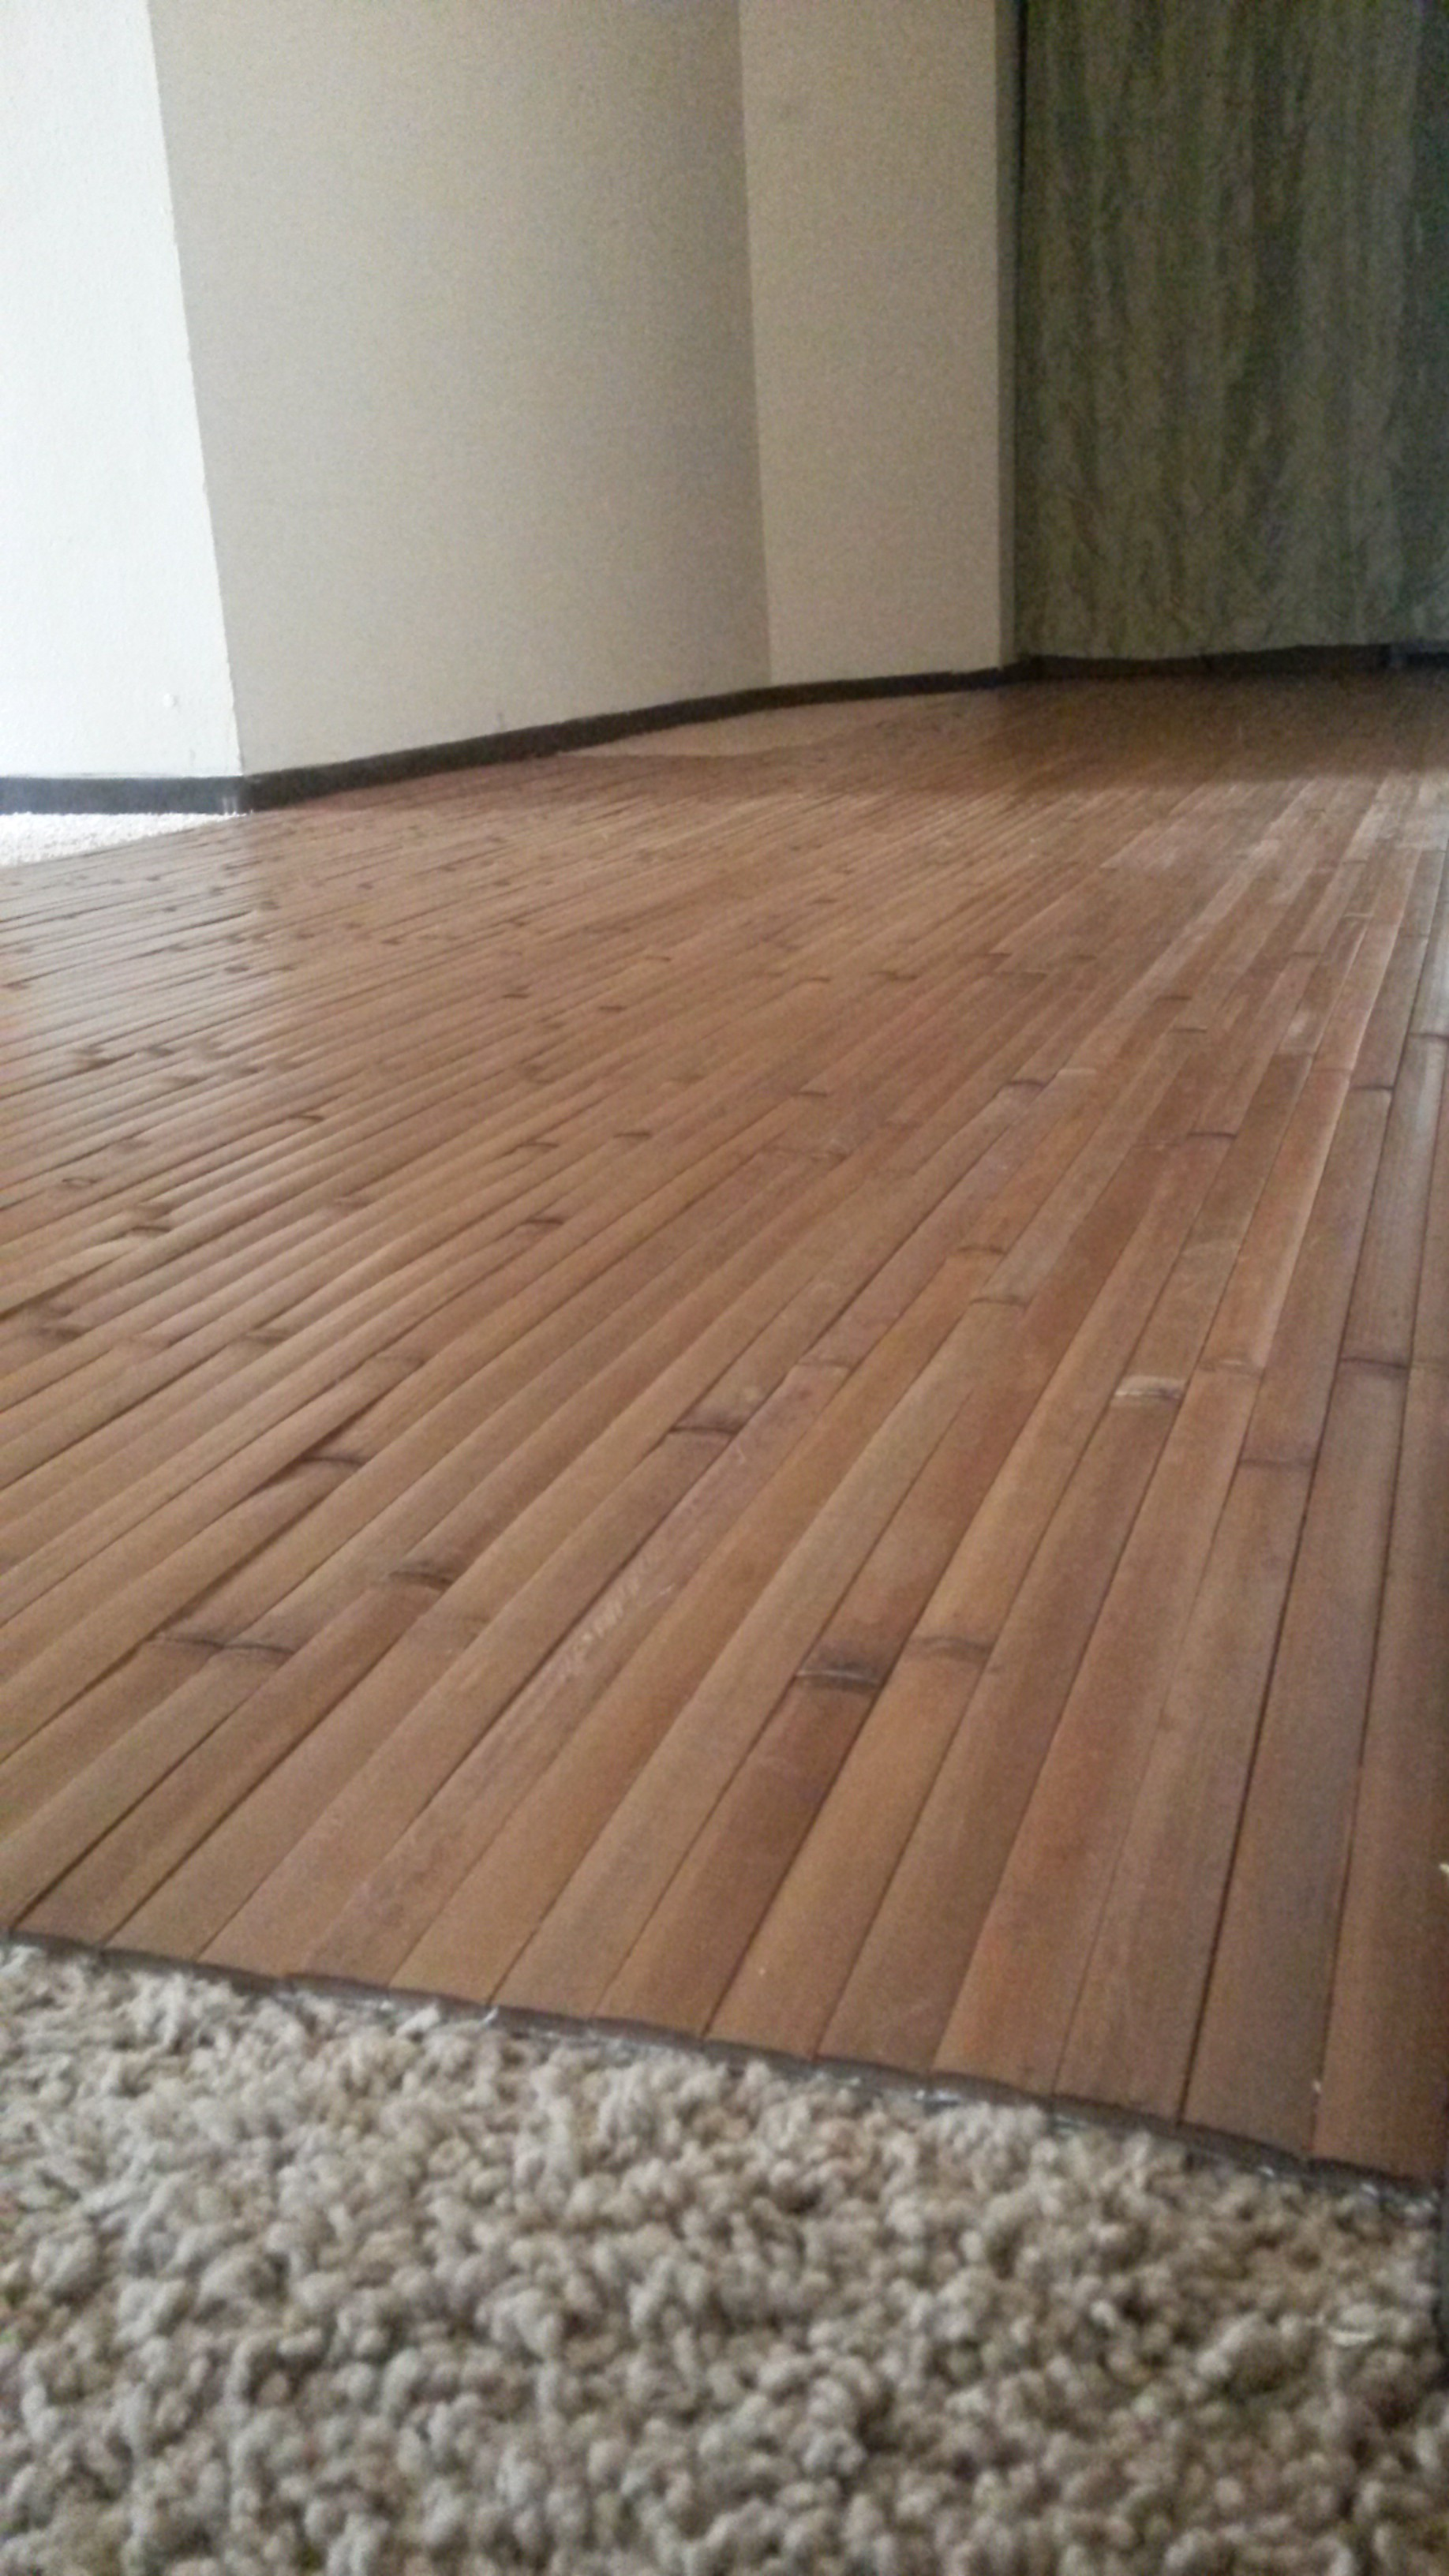 Best Flooring Over Carpet Solution Ever! - SkywayMom